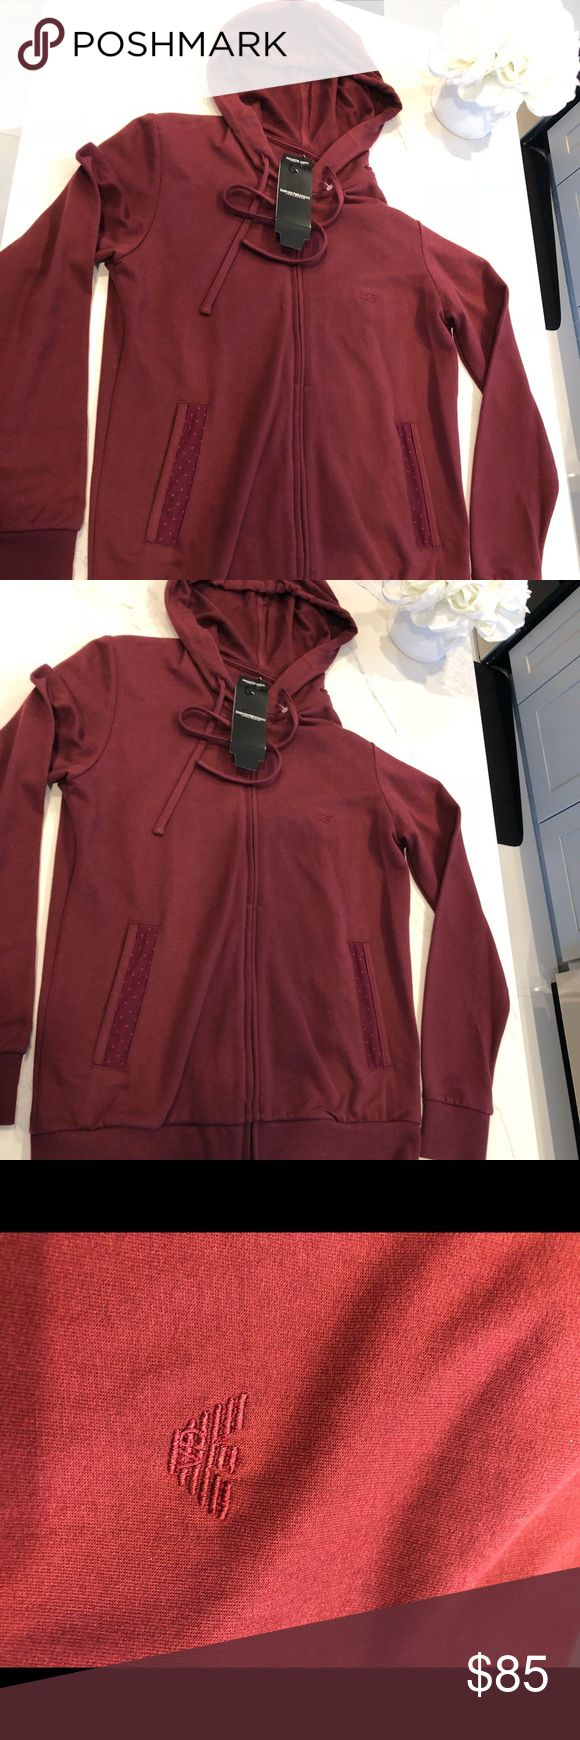 NEW!! EMPORIO ARMANI Jacket w/ hood 100% Authentic Brand New Lounge wear burgundy long sleeve jacket with hood. 100% Authentic. Purchased in Italy. Has authenticity tag and certificate. Emporio Armani Jackets & Coats